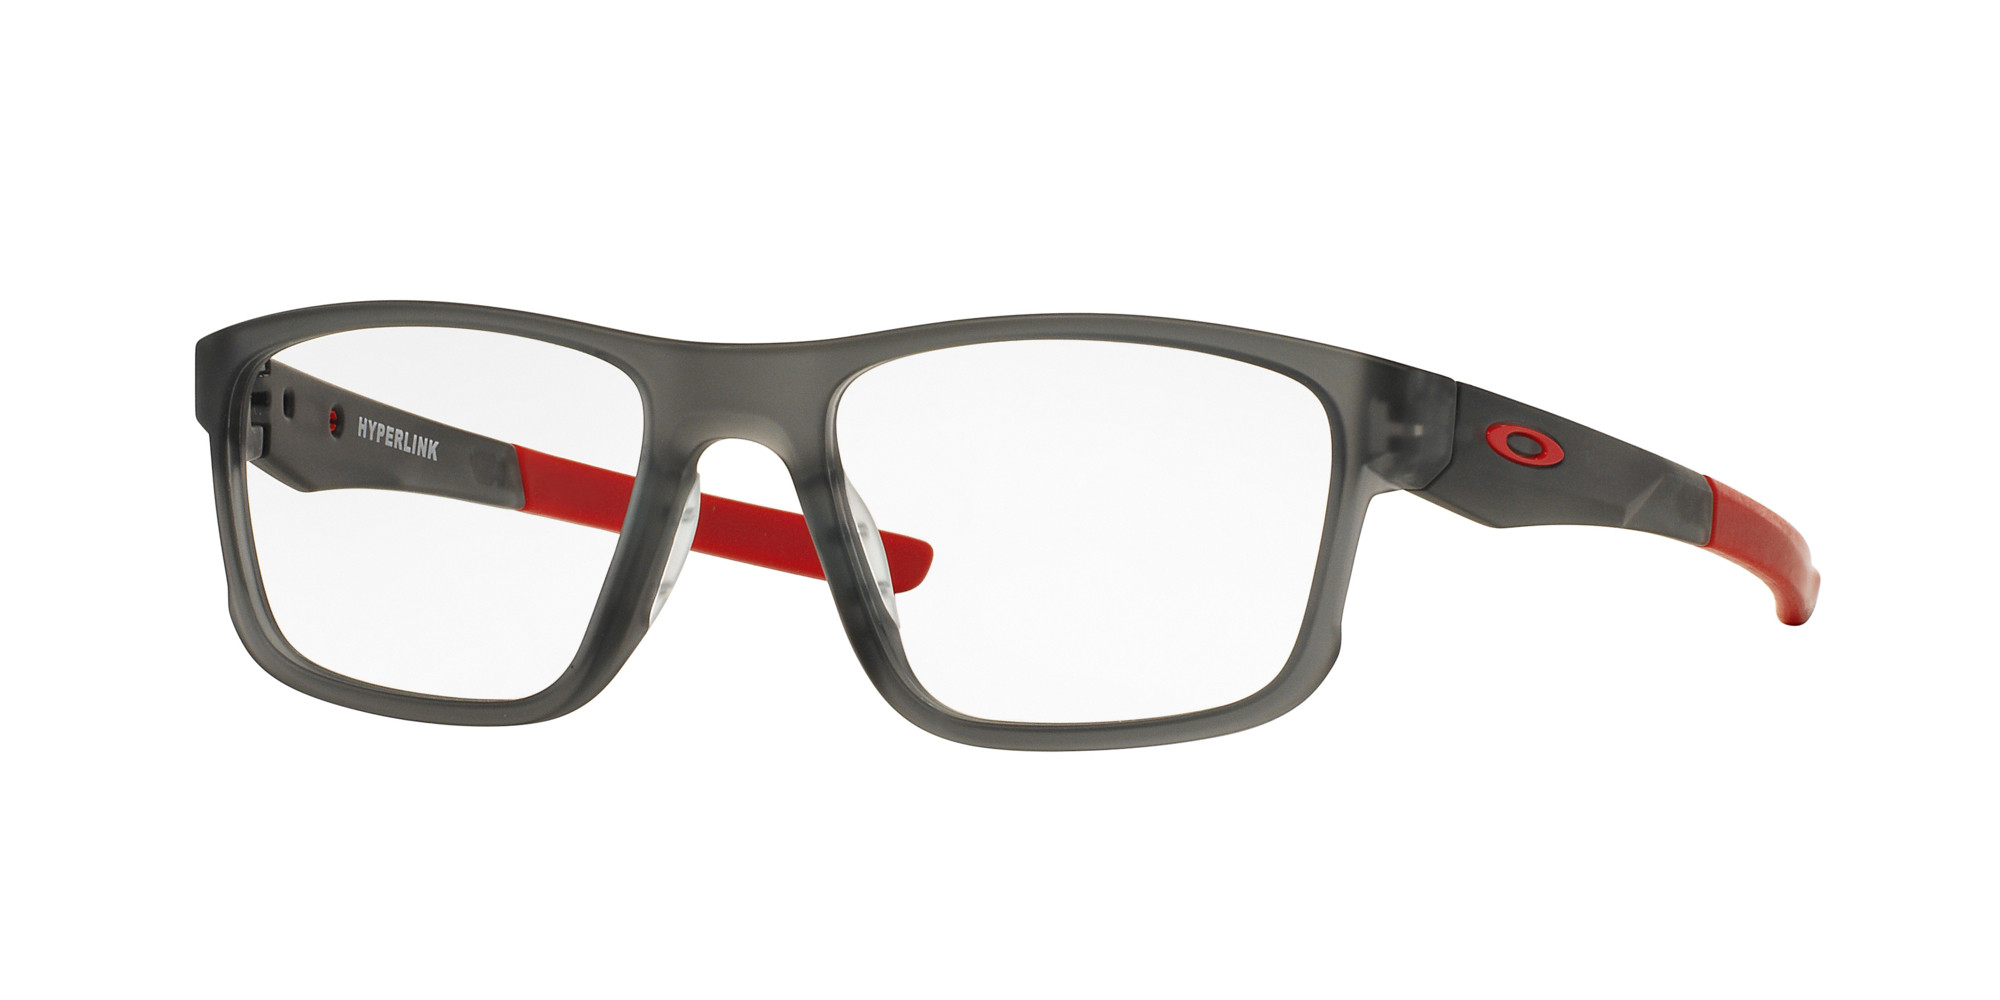 gafas graduadas OAKLEY HYPERLINK OX 8078 05